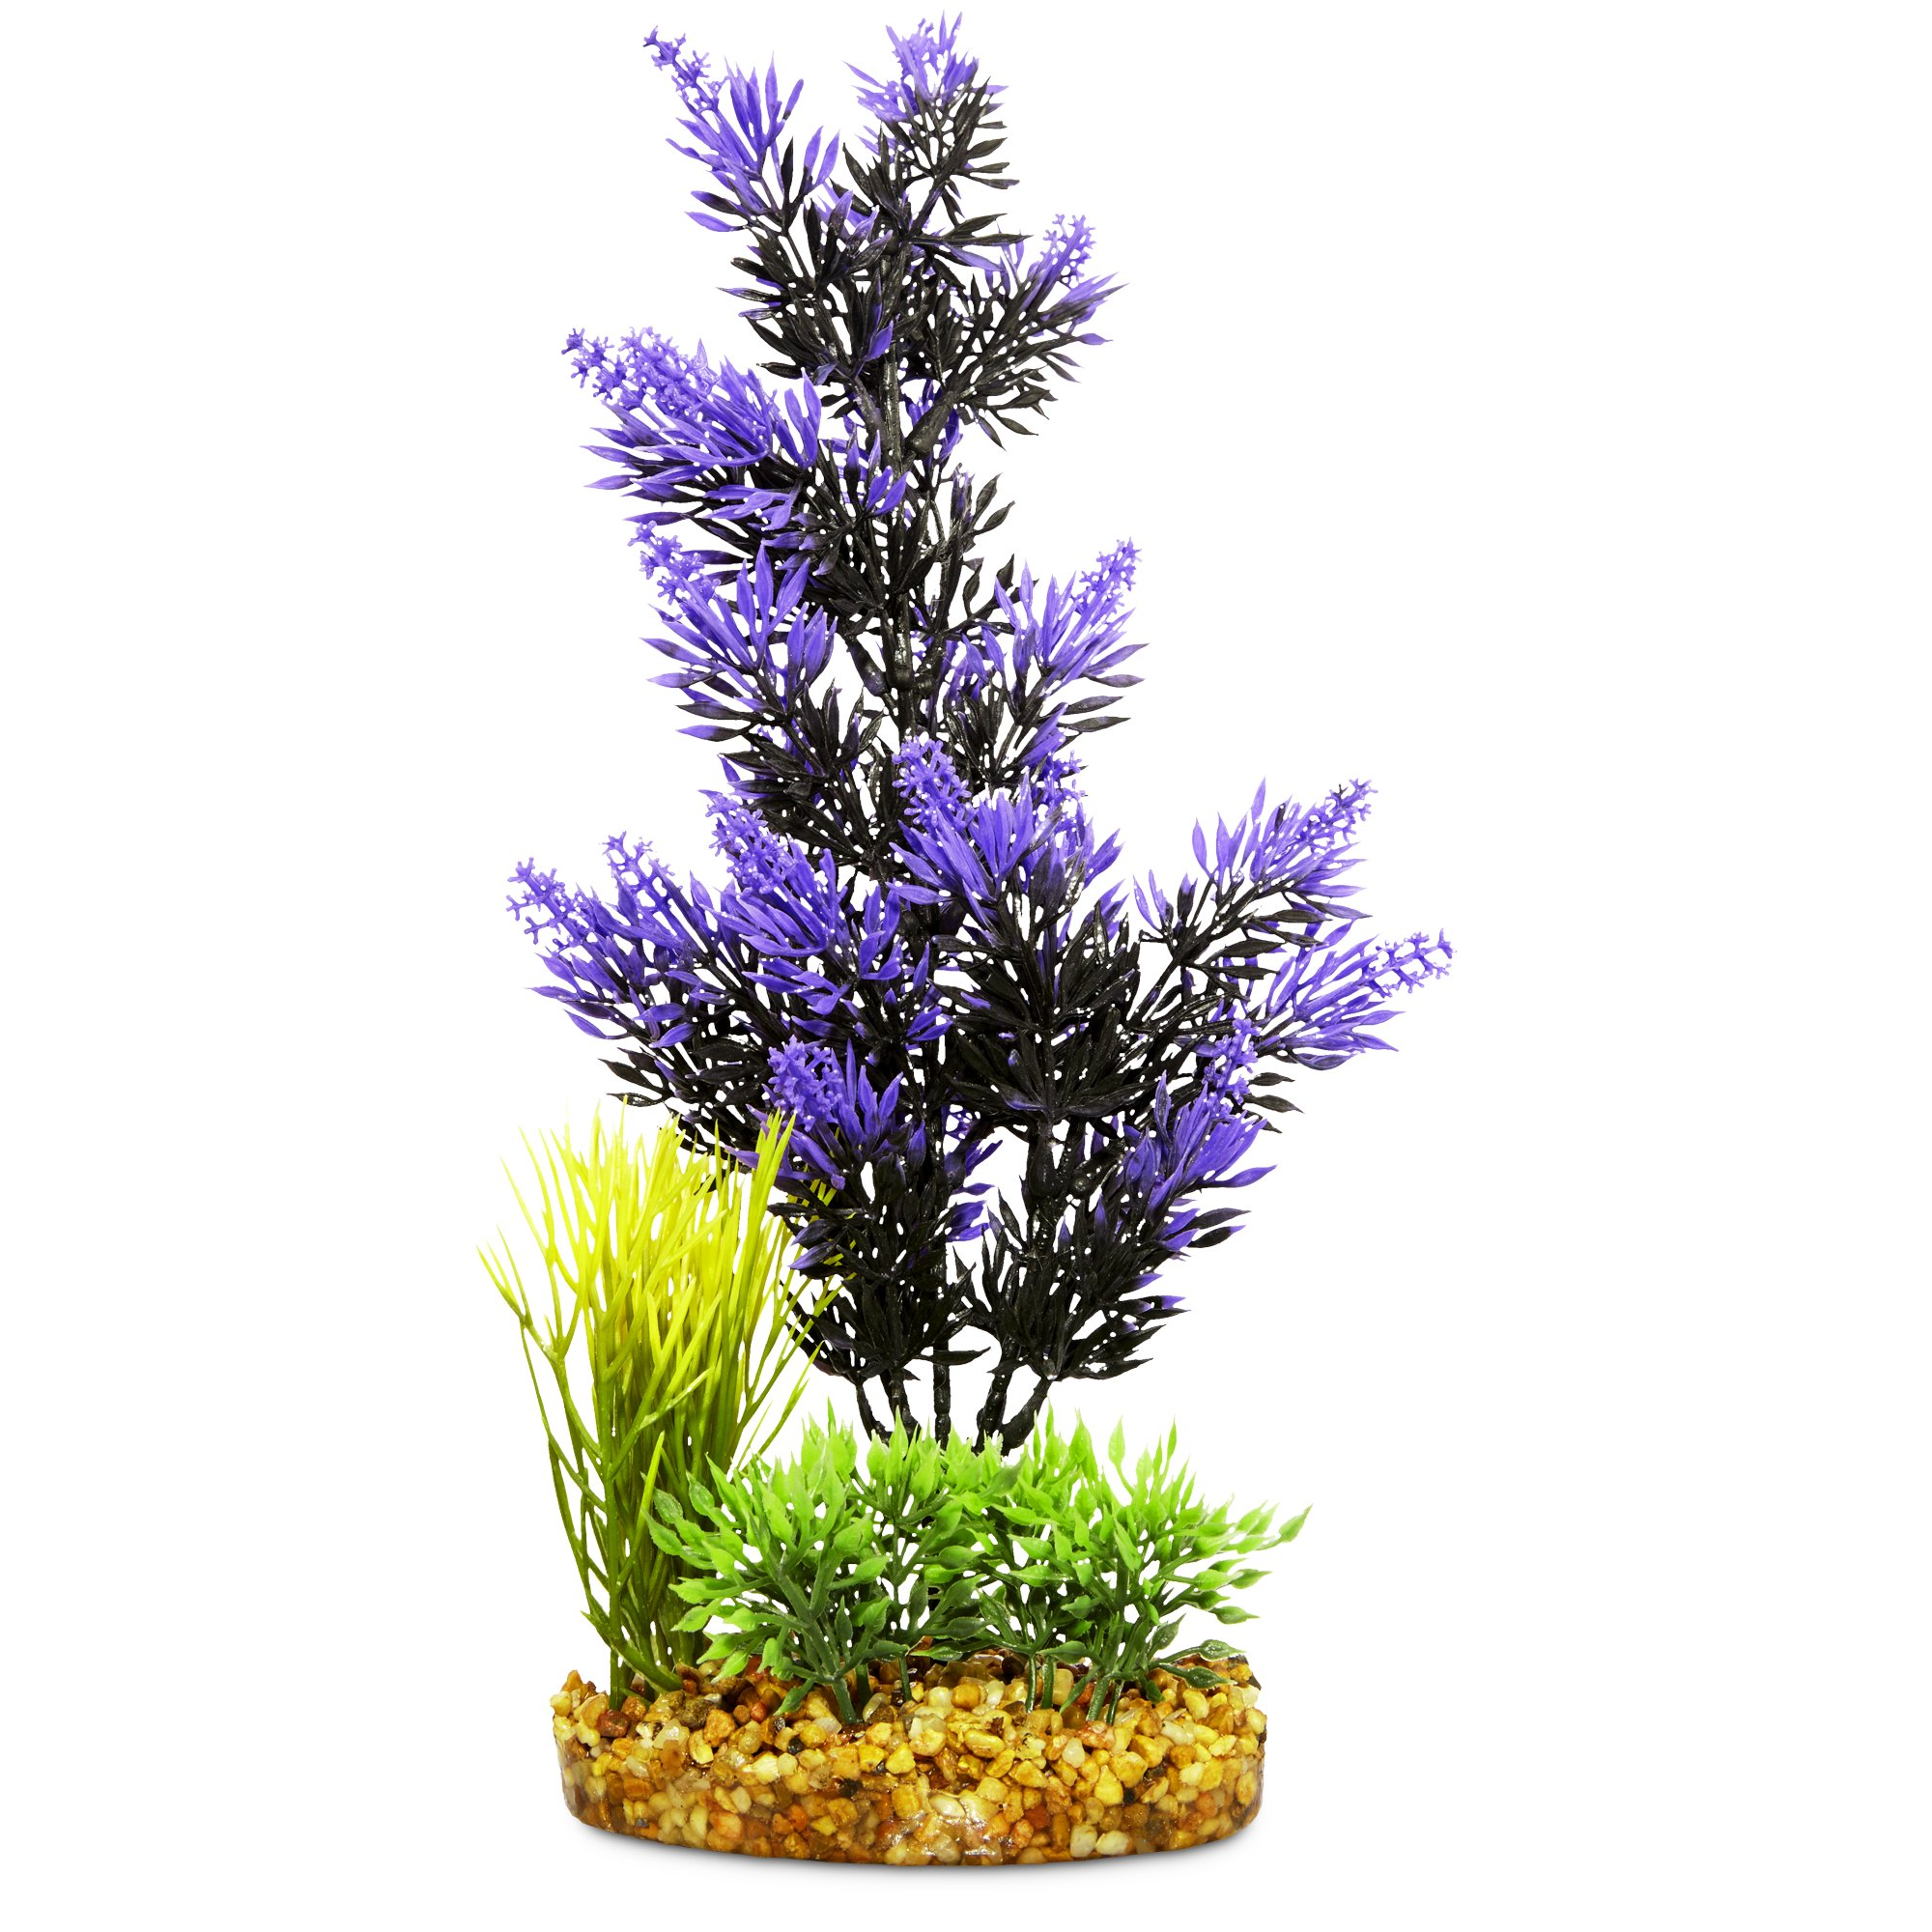 Imagitarium pacifica plant aquatic decor petco for Aquatic decoration